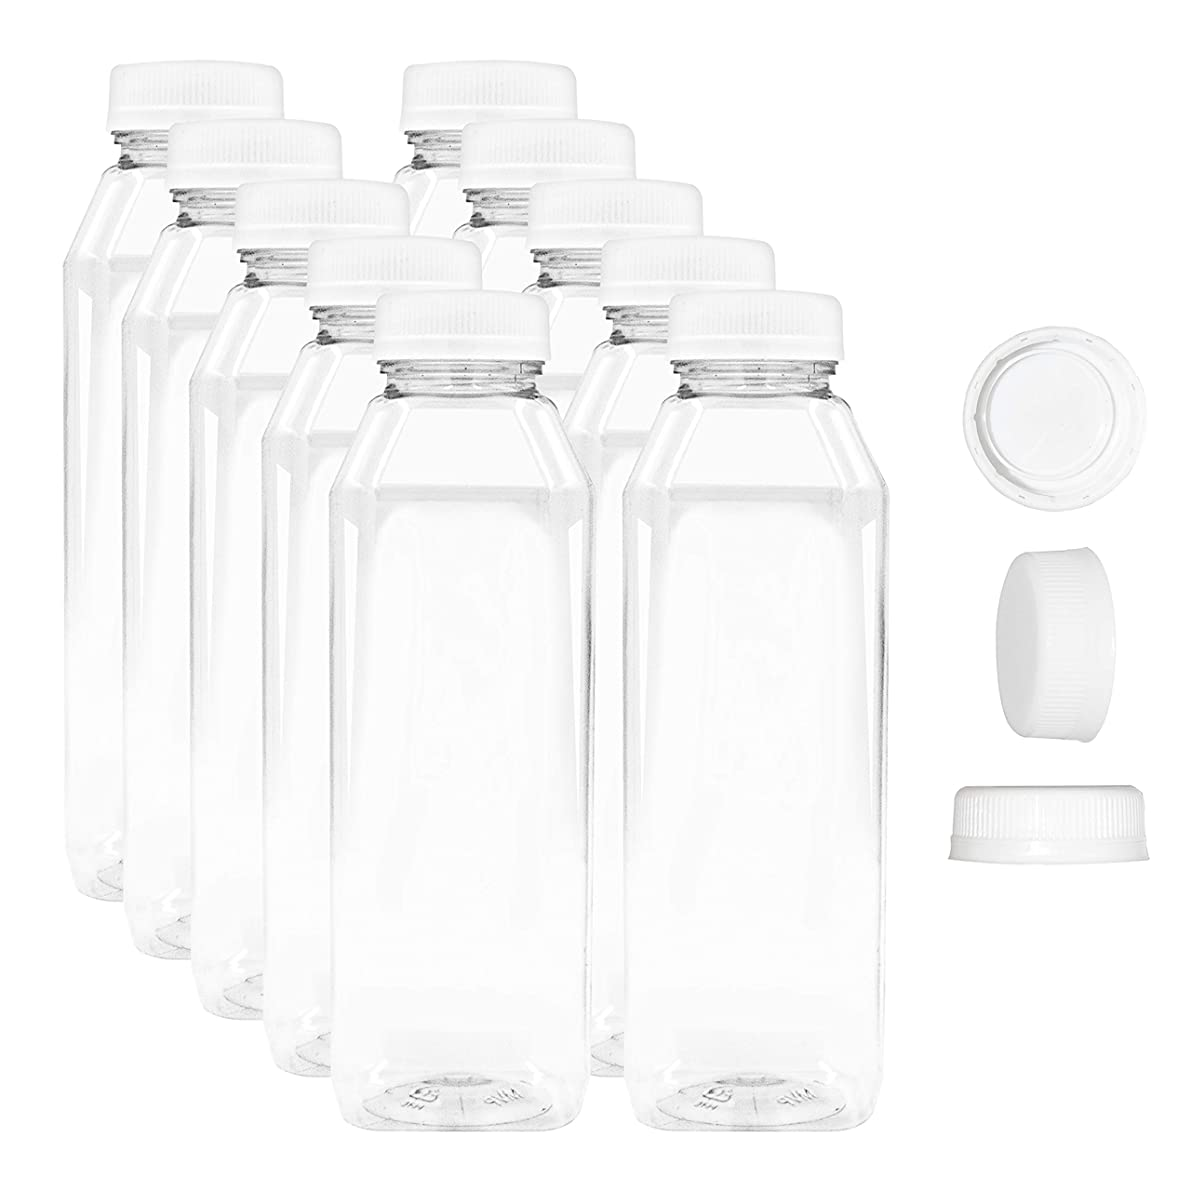 10 Pack 12 oz Empty Juice Bottles Reusable Clear Plastic Disposable Milk Containers with White Tamper Proof Caps